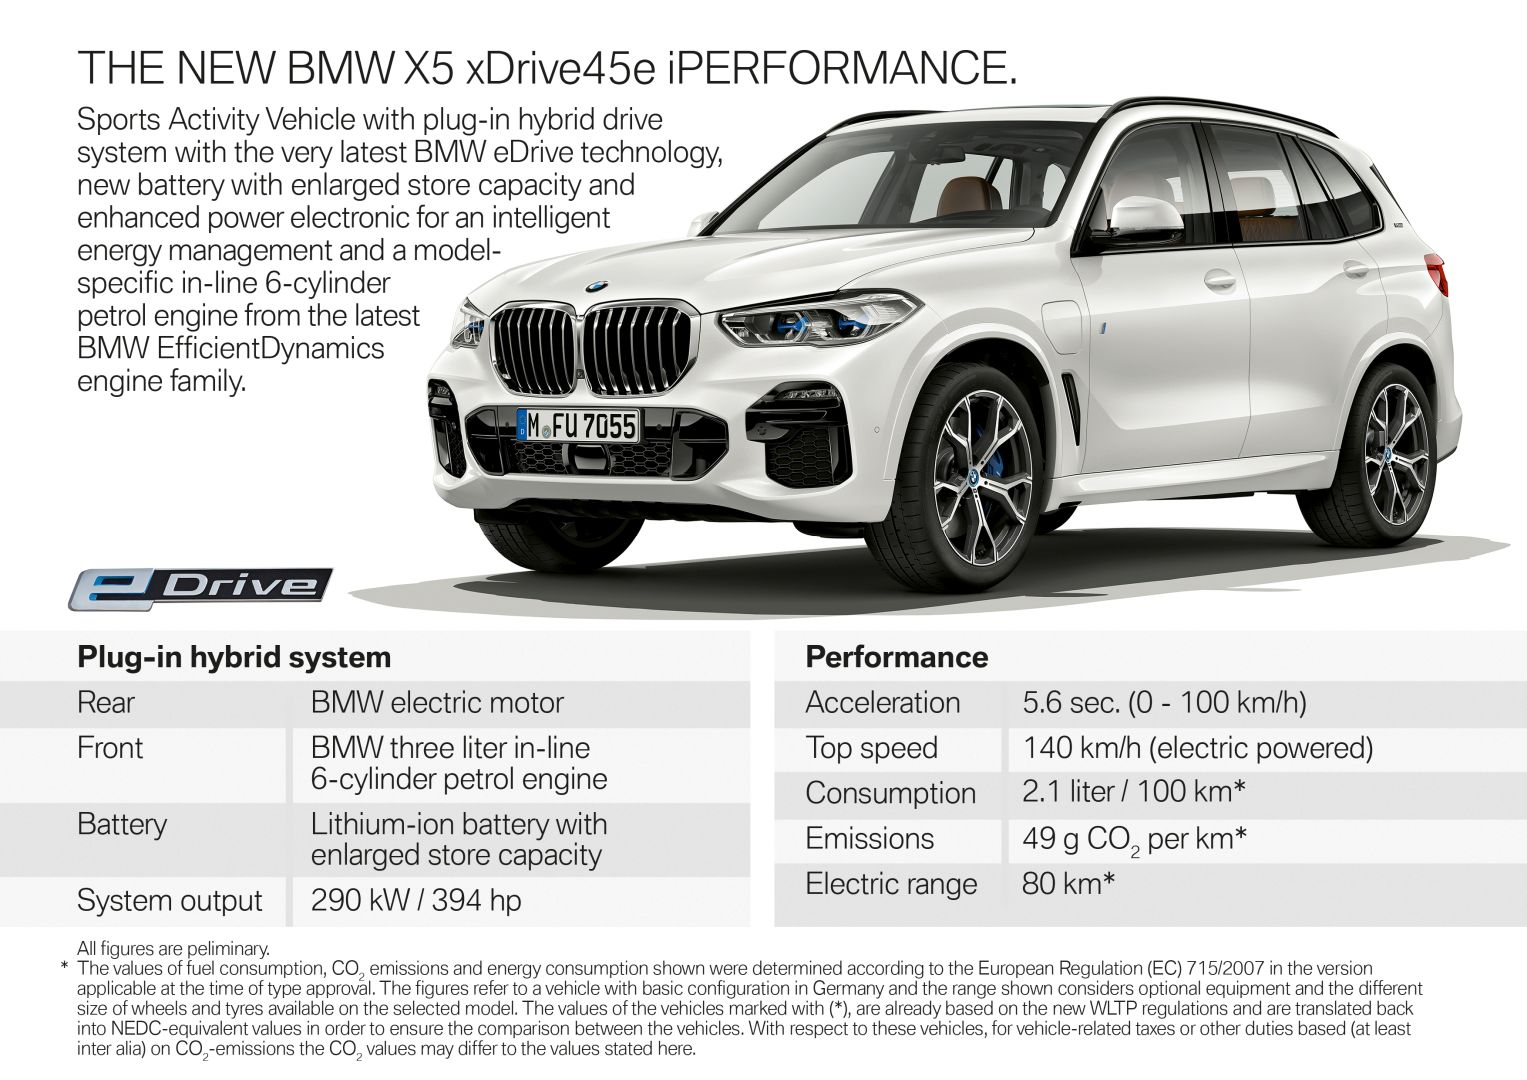 BMW X5 xDrive45e iPerformance plug-in hybrid promises more electric range